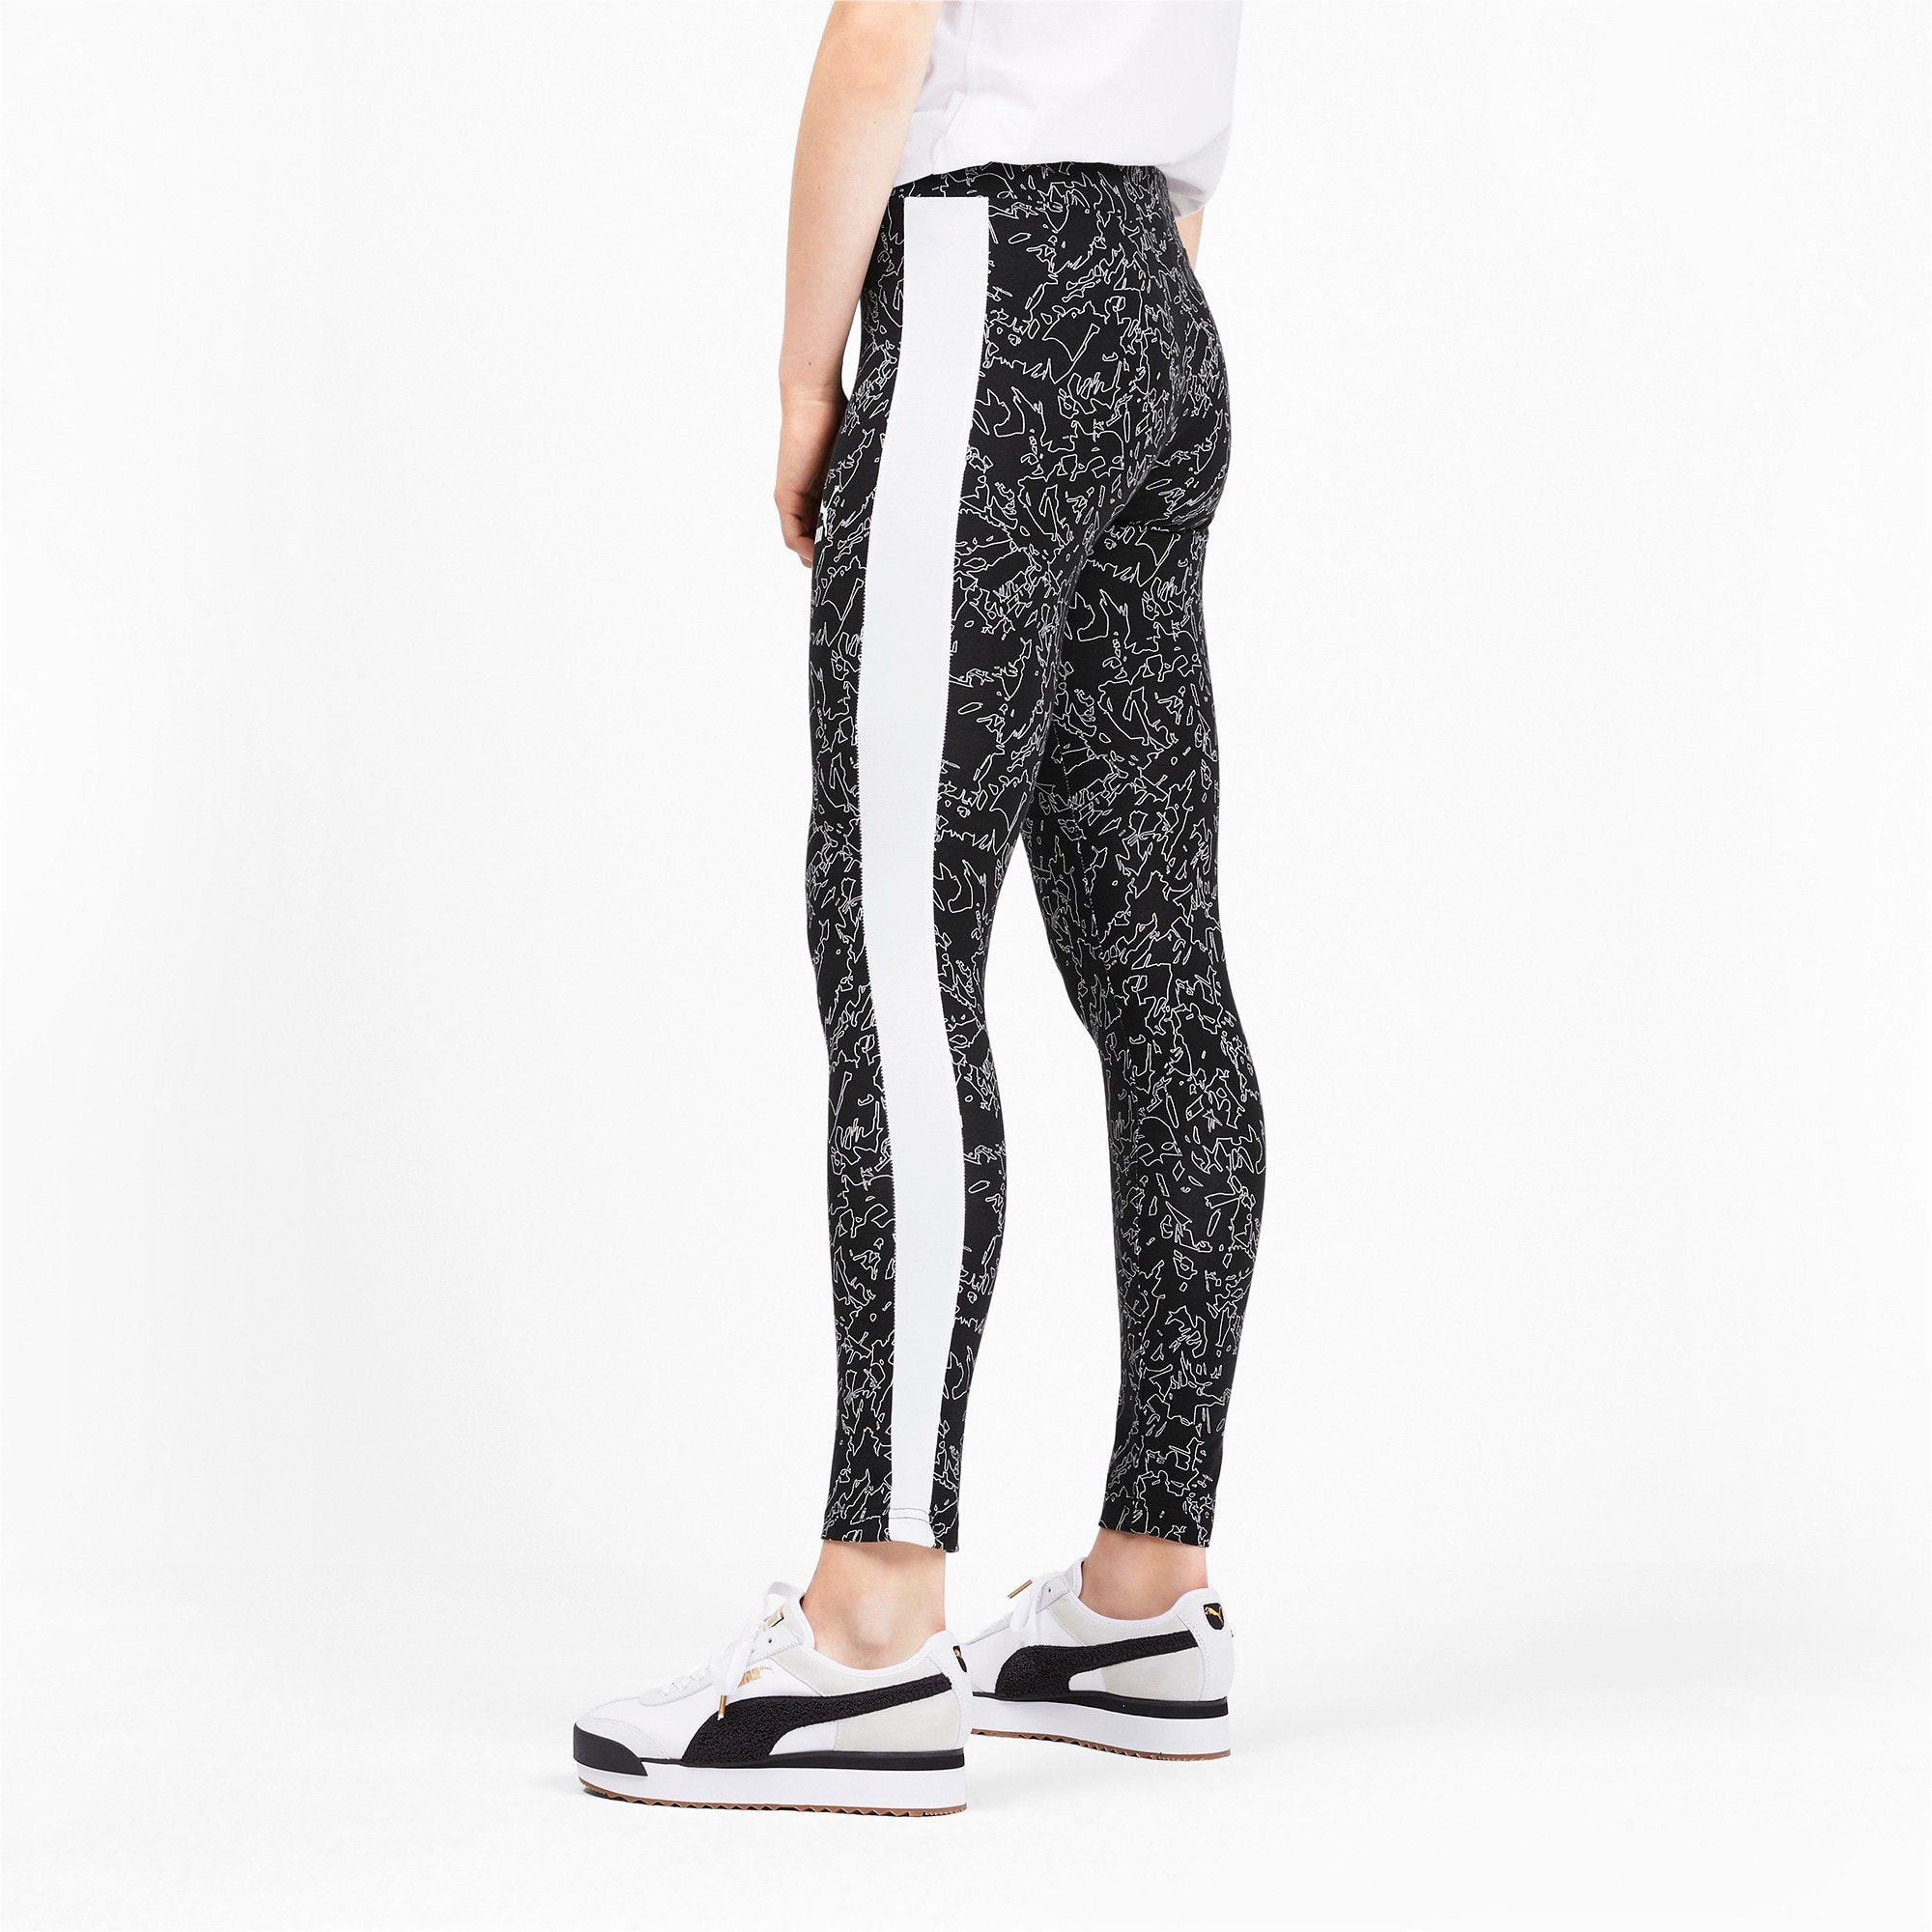 Thumbnail 2 of Classics T7 Women's Leggings, Puma Black, medium